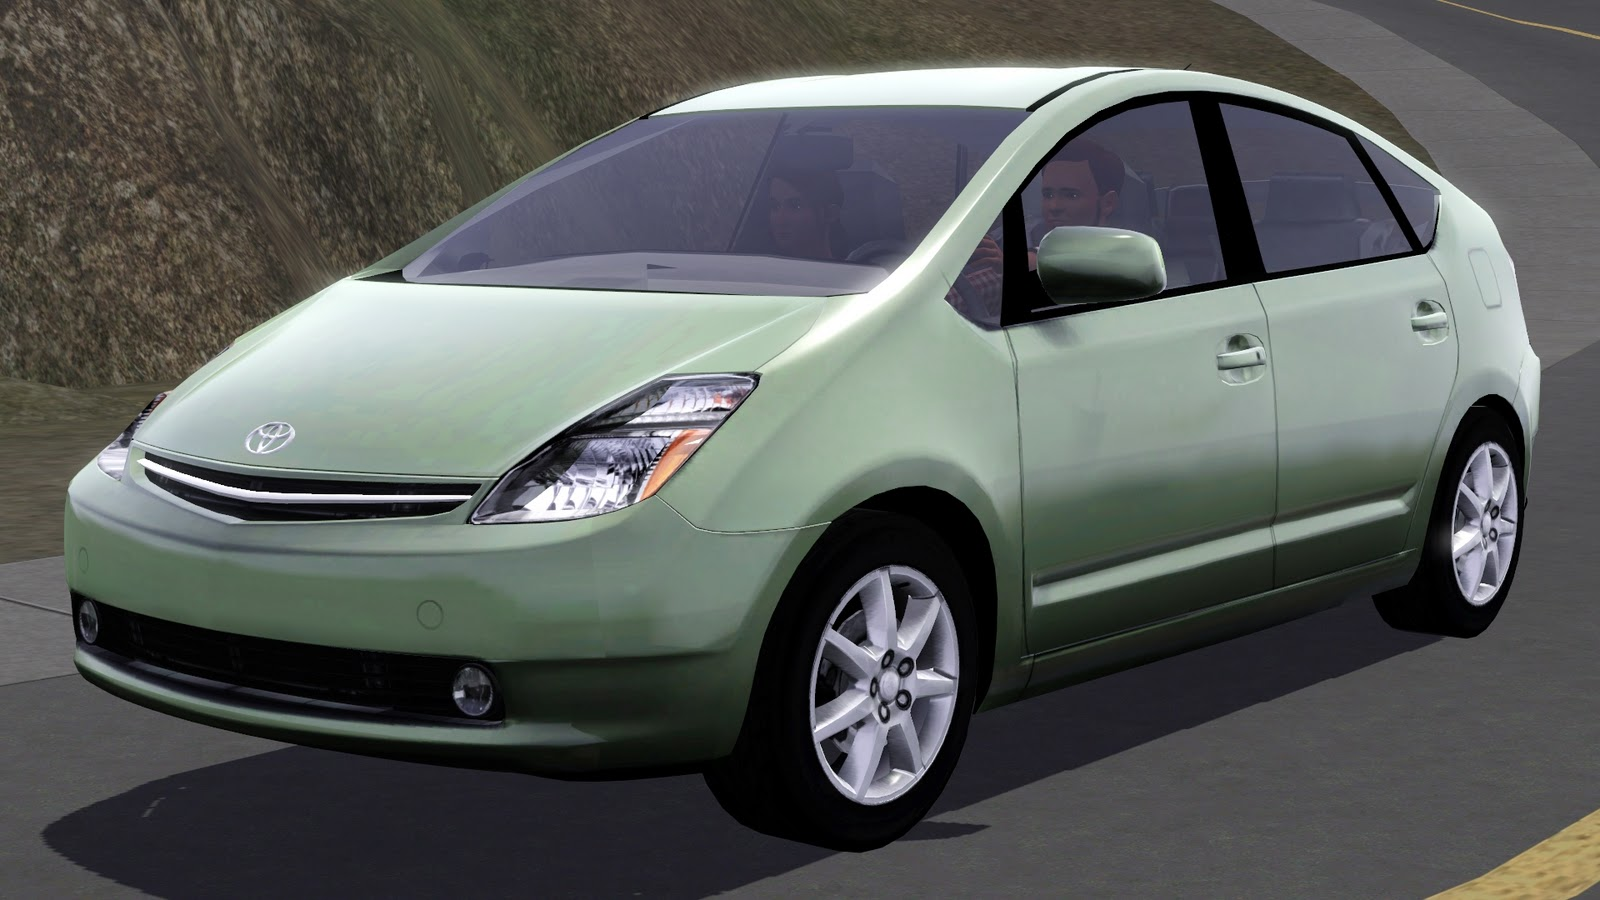 my sims 3 blog 2009 toyota prius by fresh prince. Black Bedroom Furniture Sets. Home Design Ideas